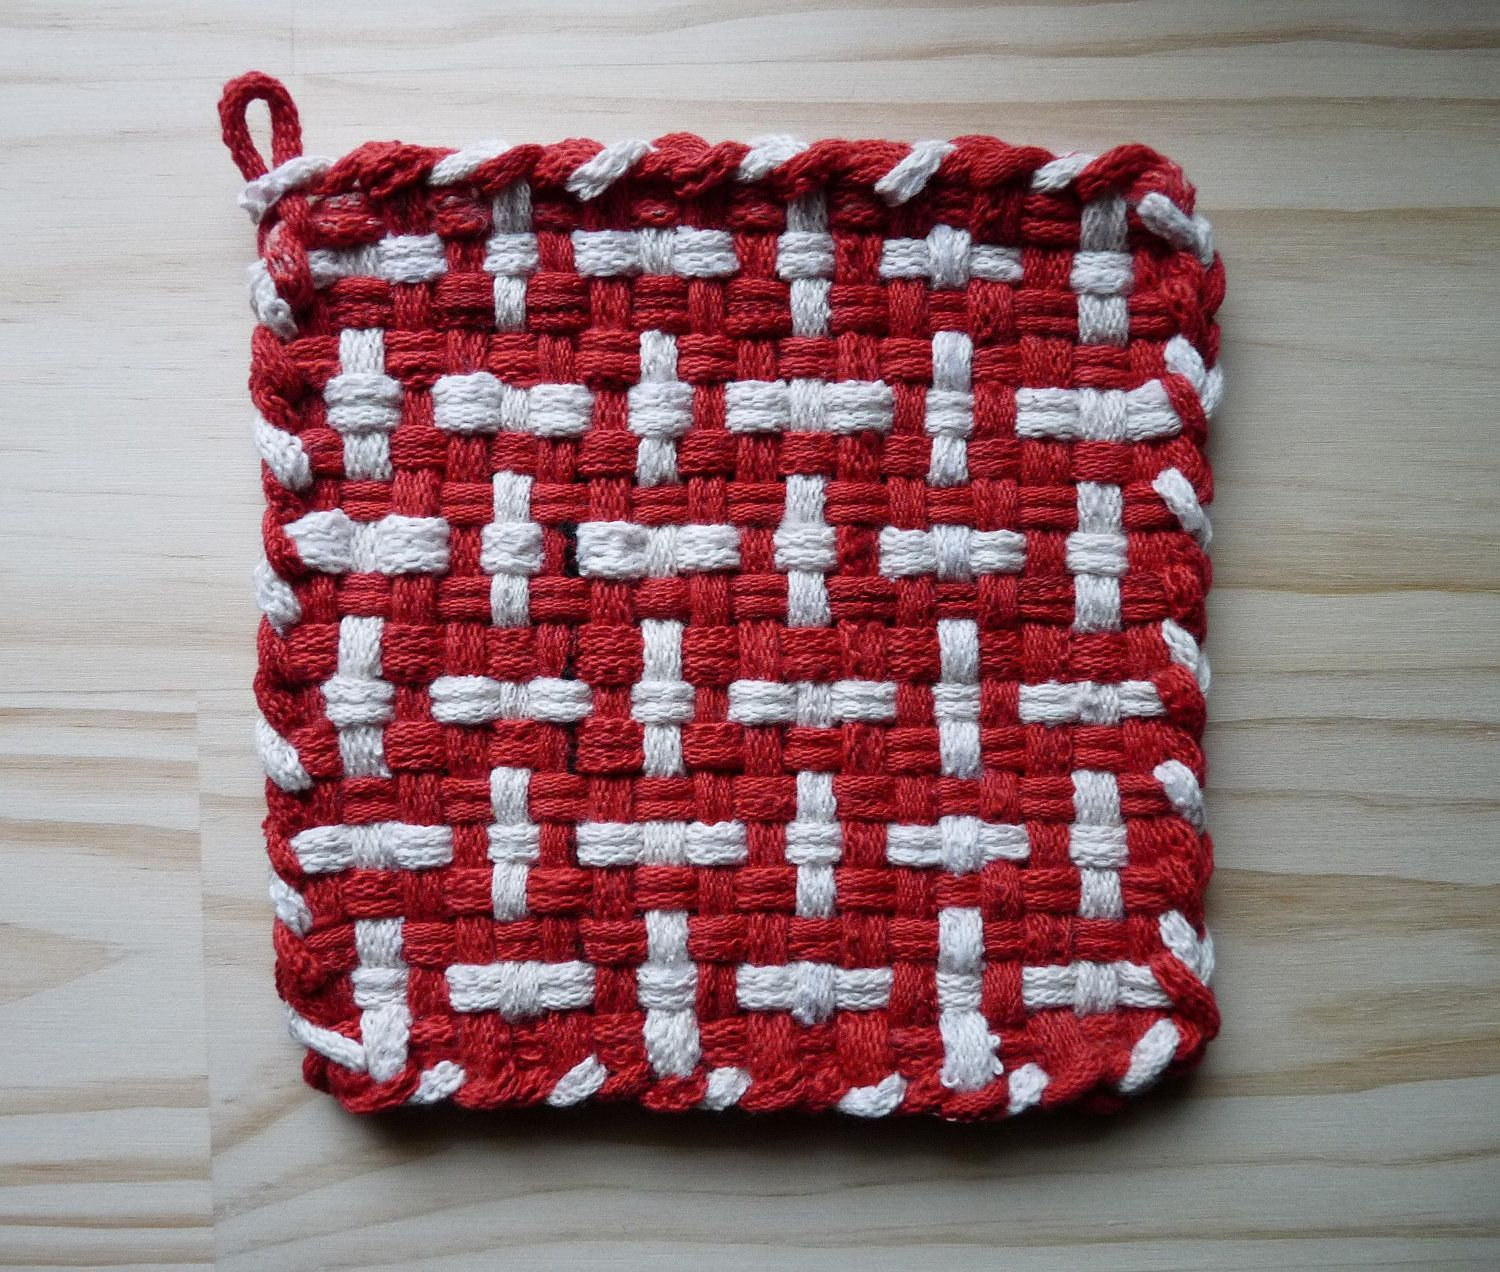 White pot holders for crafts - Red And White Pattern Woven Cotton Loop Loom Potholder Vintage Colorful Kitchen Farmhouse Style